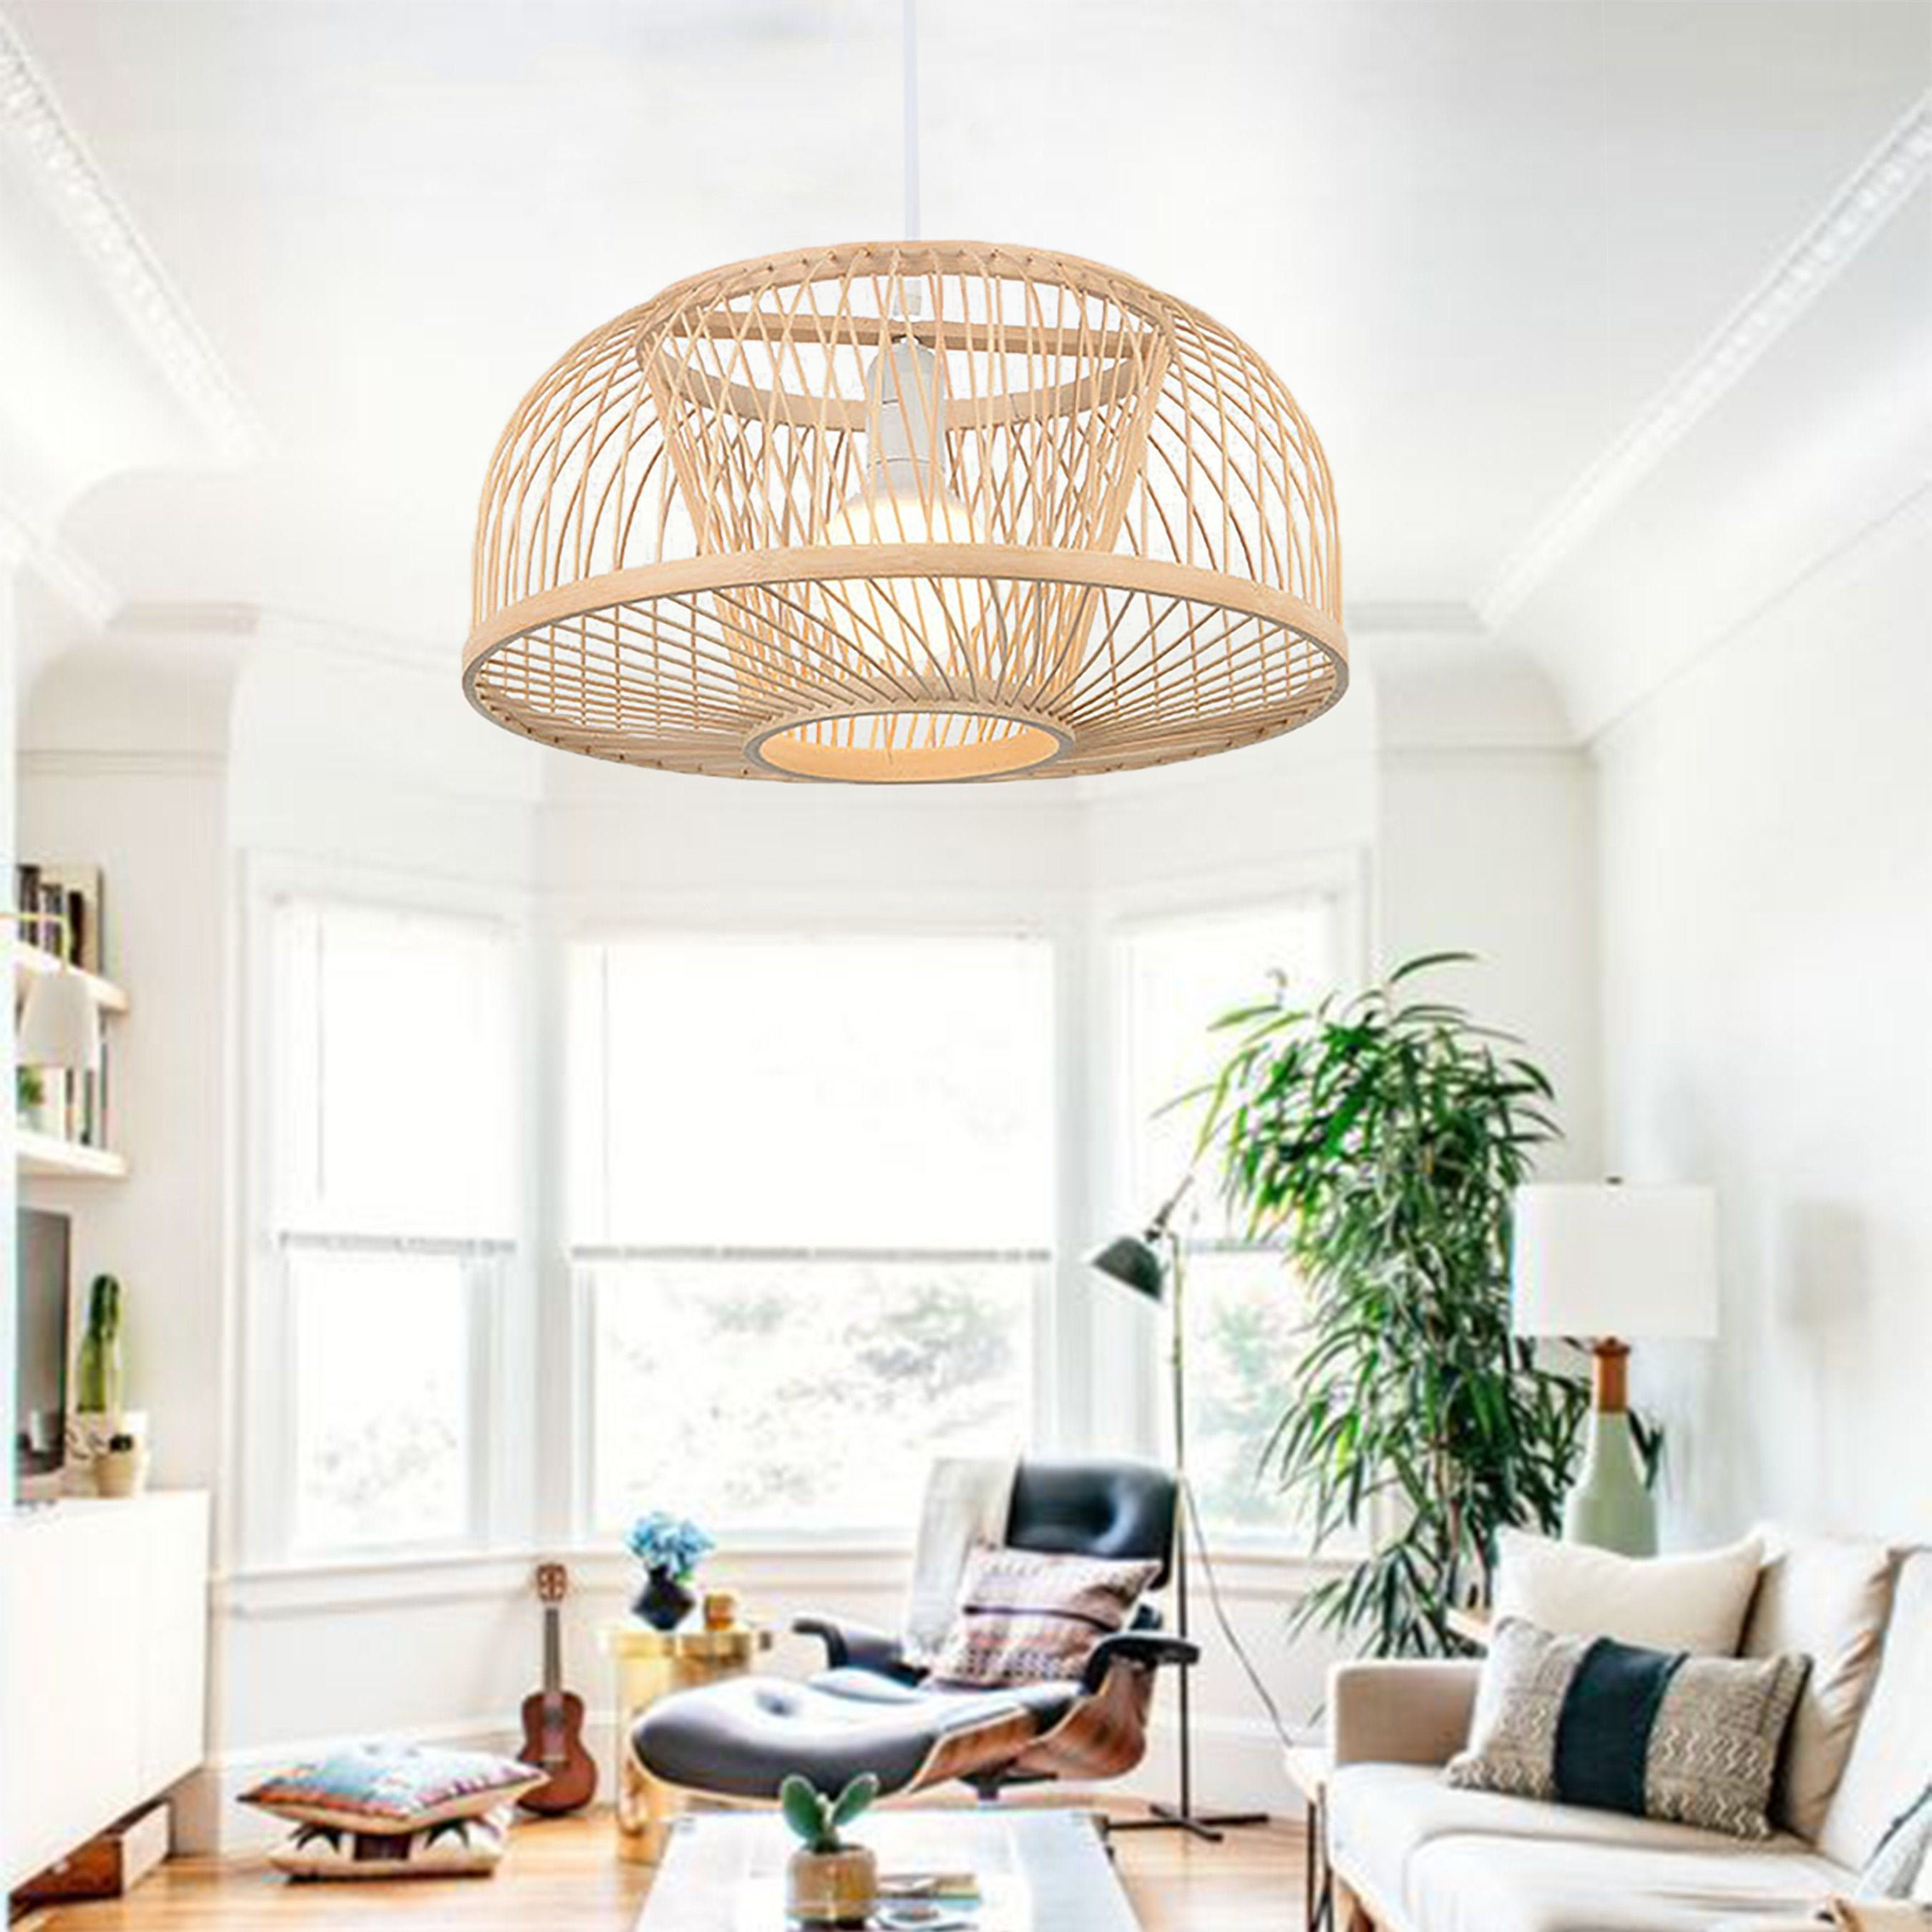 Walmhomie Rattan Lamp Shadevintage Ceiling Lamprattan Light Etsy In 2020 Rattan Light Fixture Rattan Lamp Ceiling Lamp